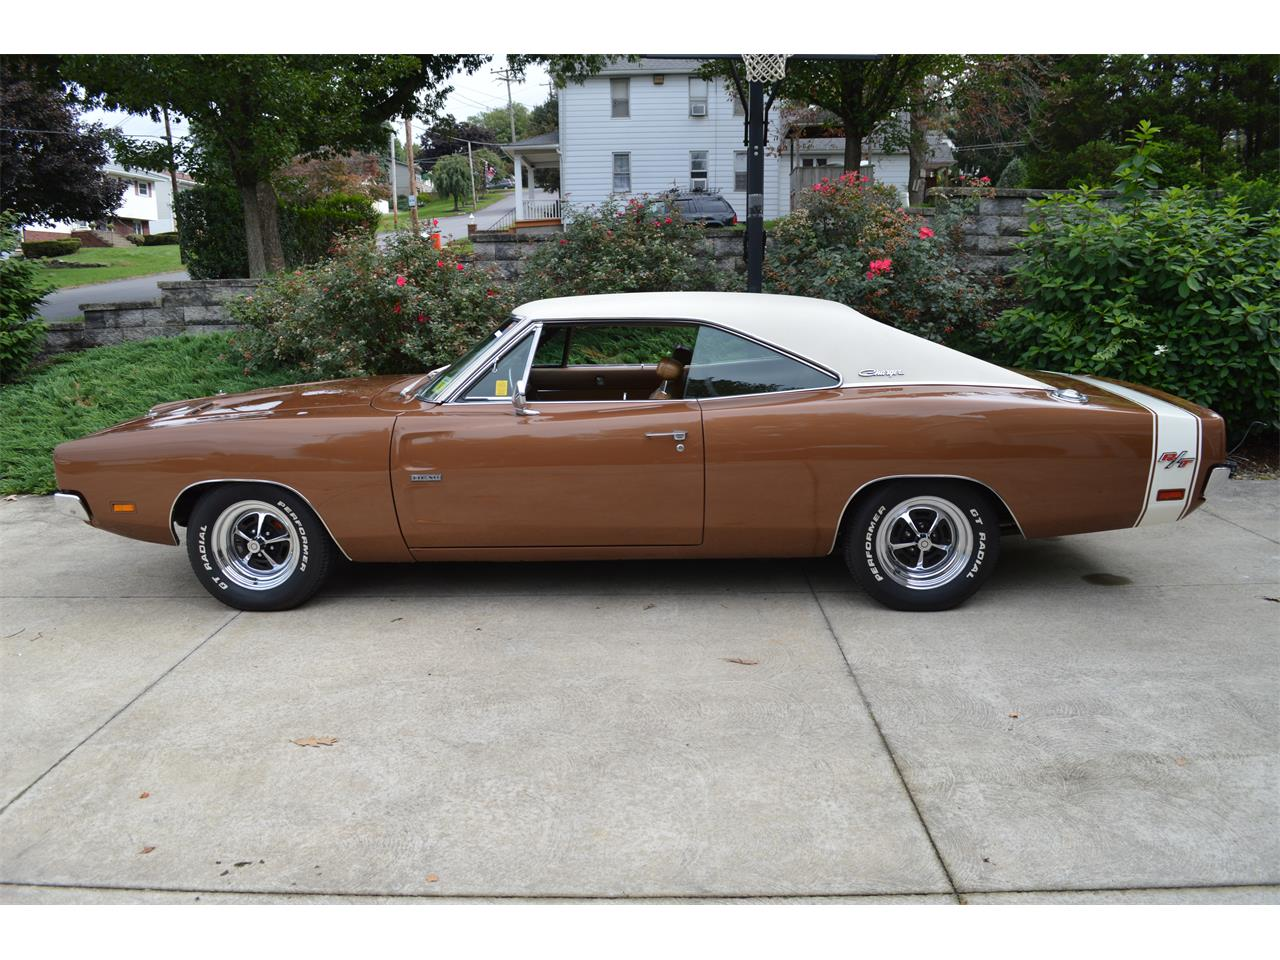 Large Picture of Classic '69 Dodge Charger Hemi R/T - $132,500.00 Offered by a Private Seller - OOYS